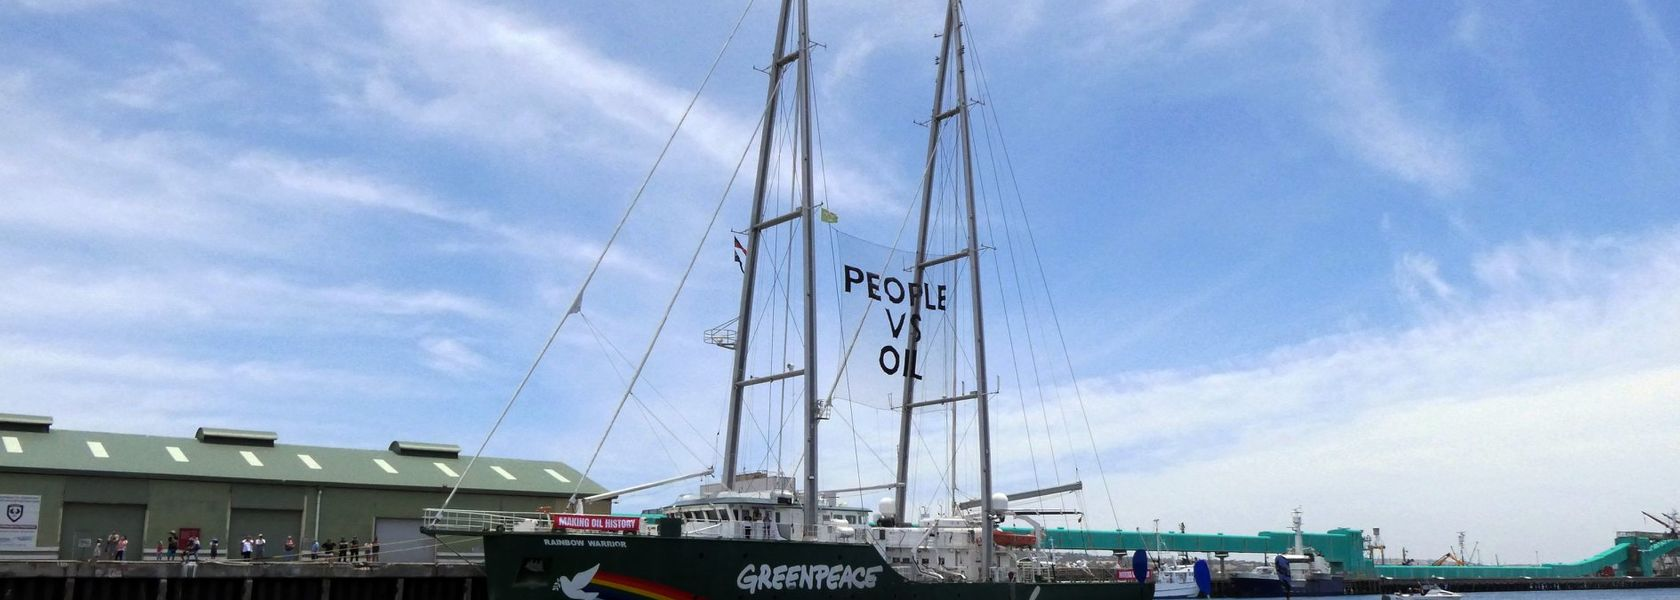 Greenpeace steps up fight against Equinor in Bight